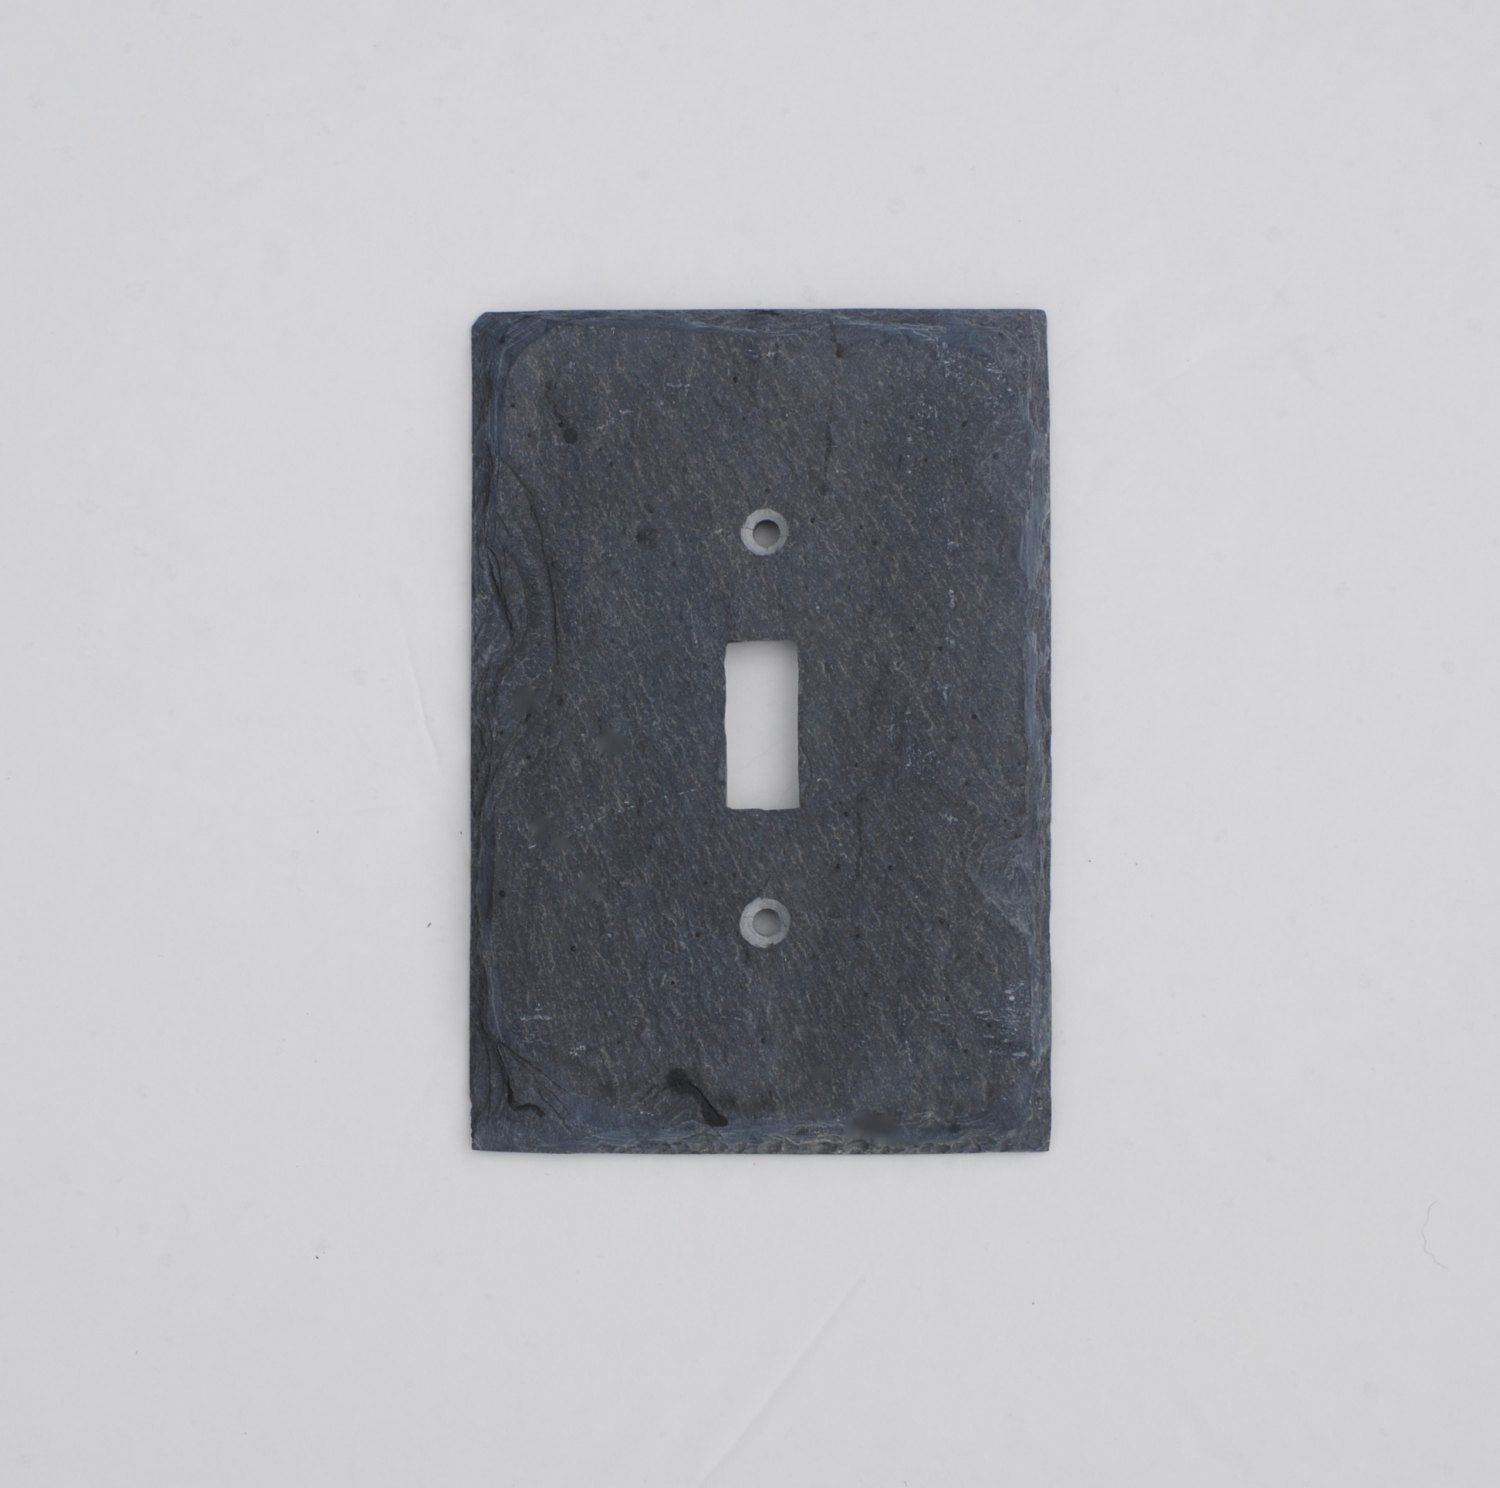 Decorative Light Switch Plates Beauteous Decorative Light Switch Cover Switch Plate Wall Plate Rustic Review